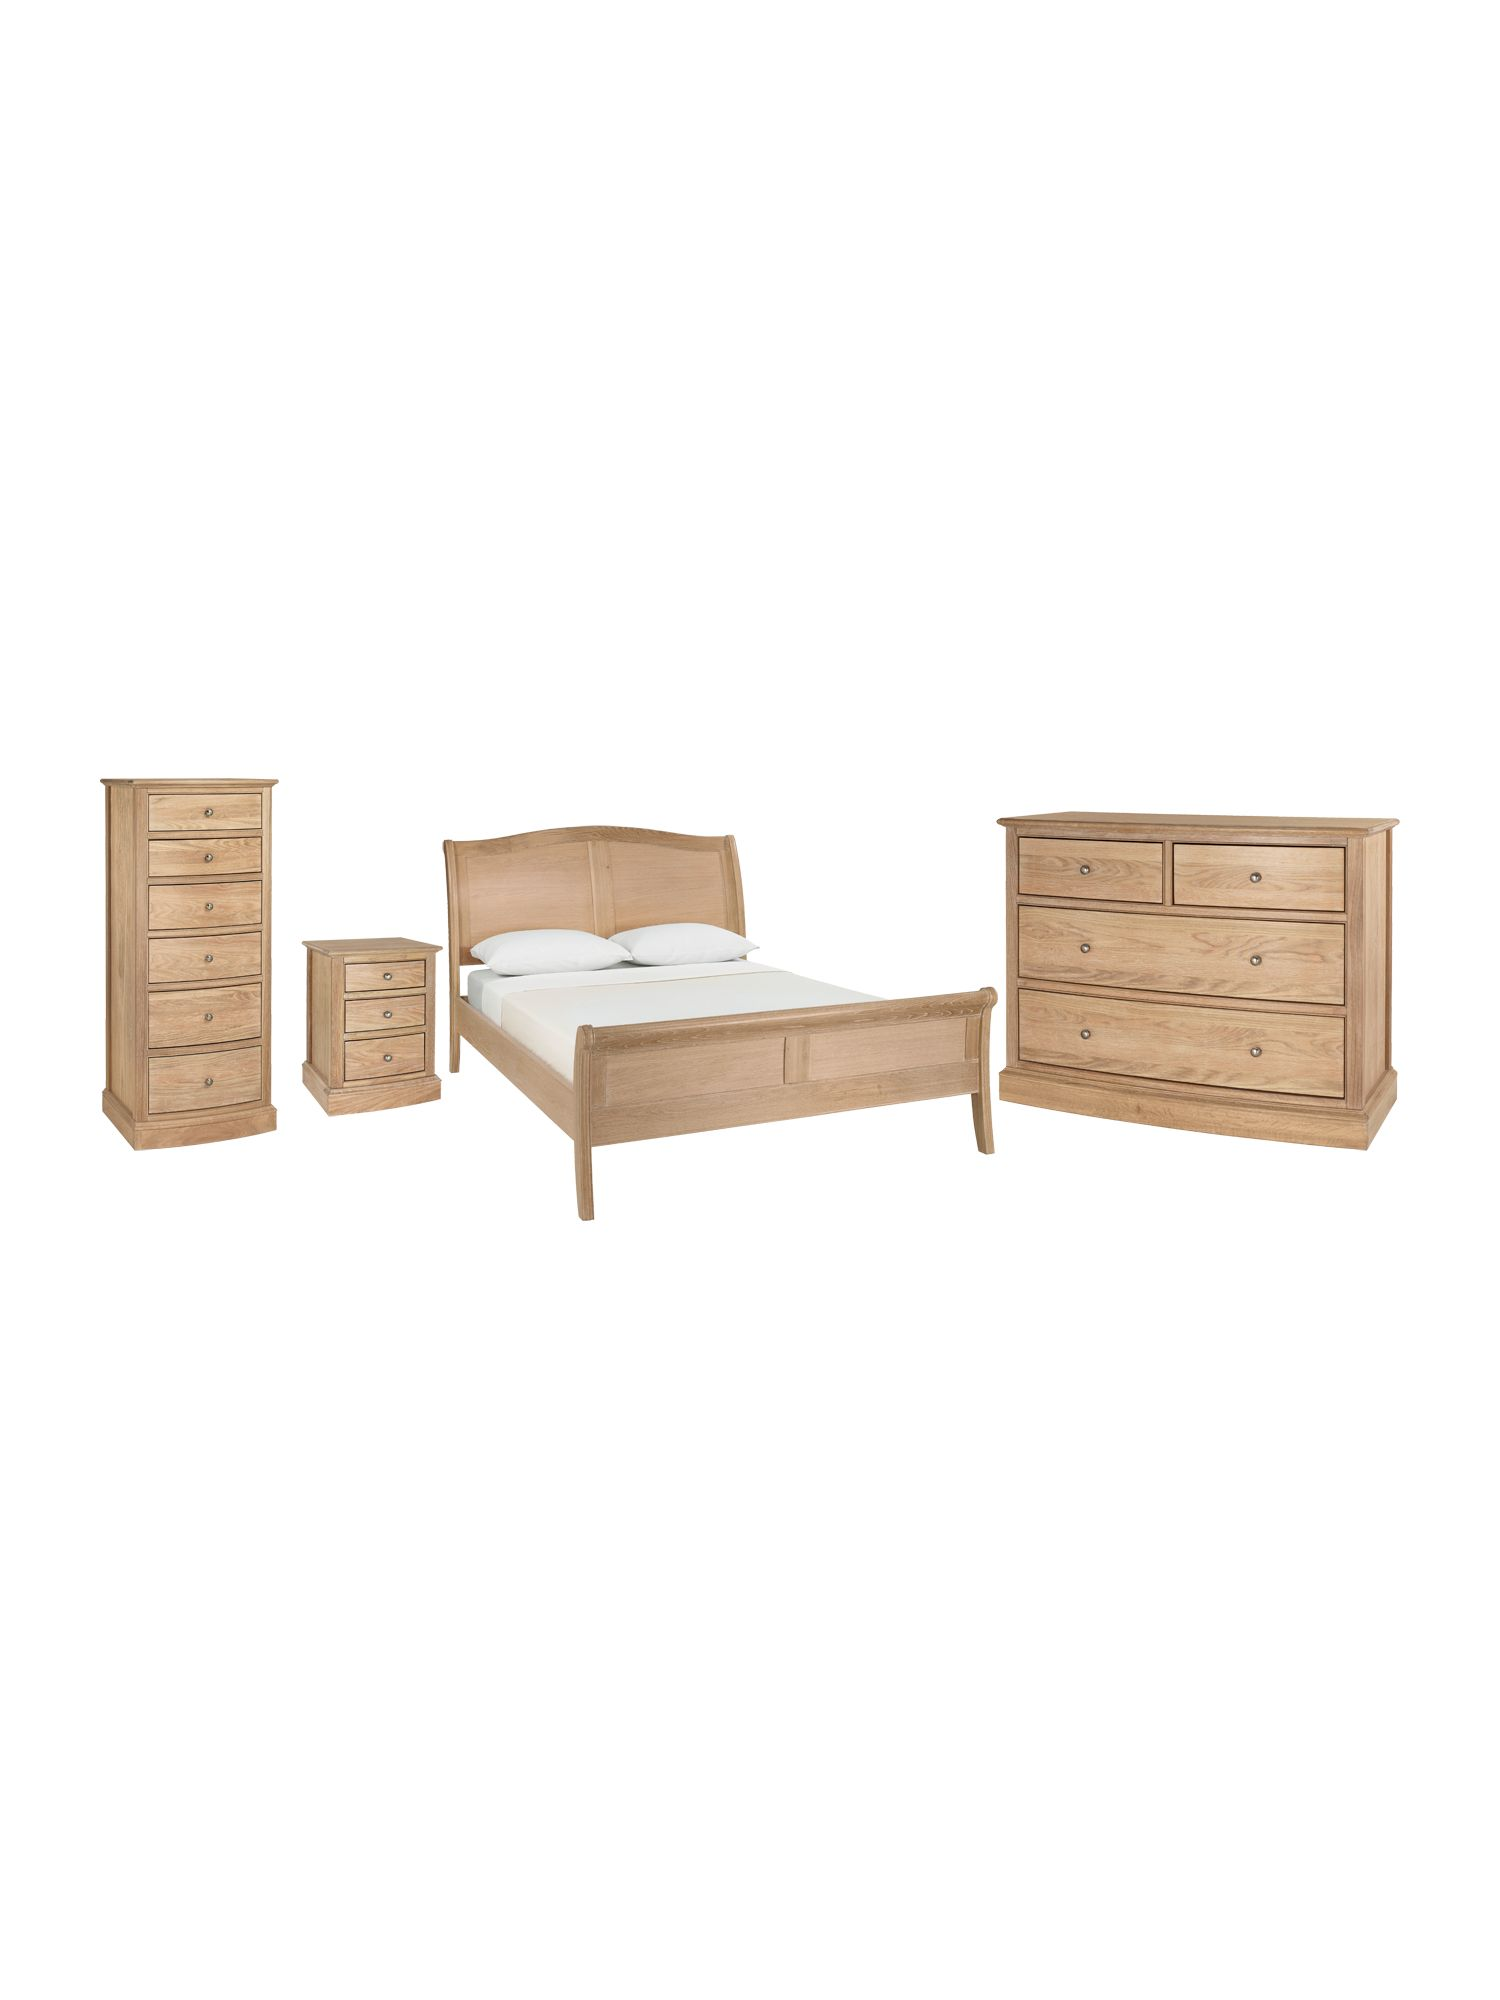 Hollie Bed furniture range